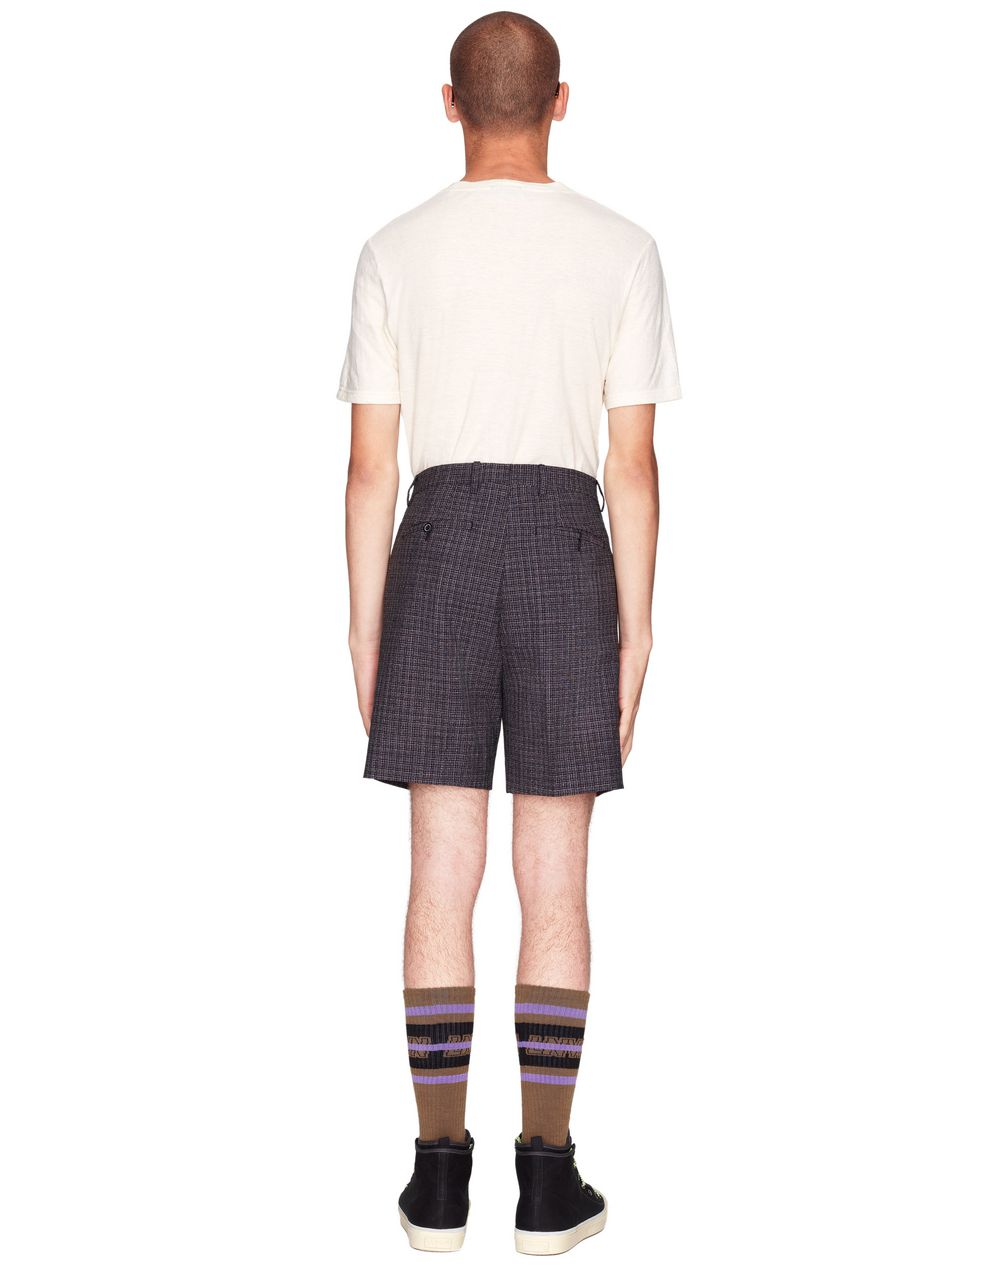 TAILORED TWEED SHORTS    - Lanvin